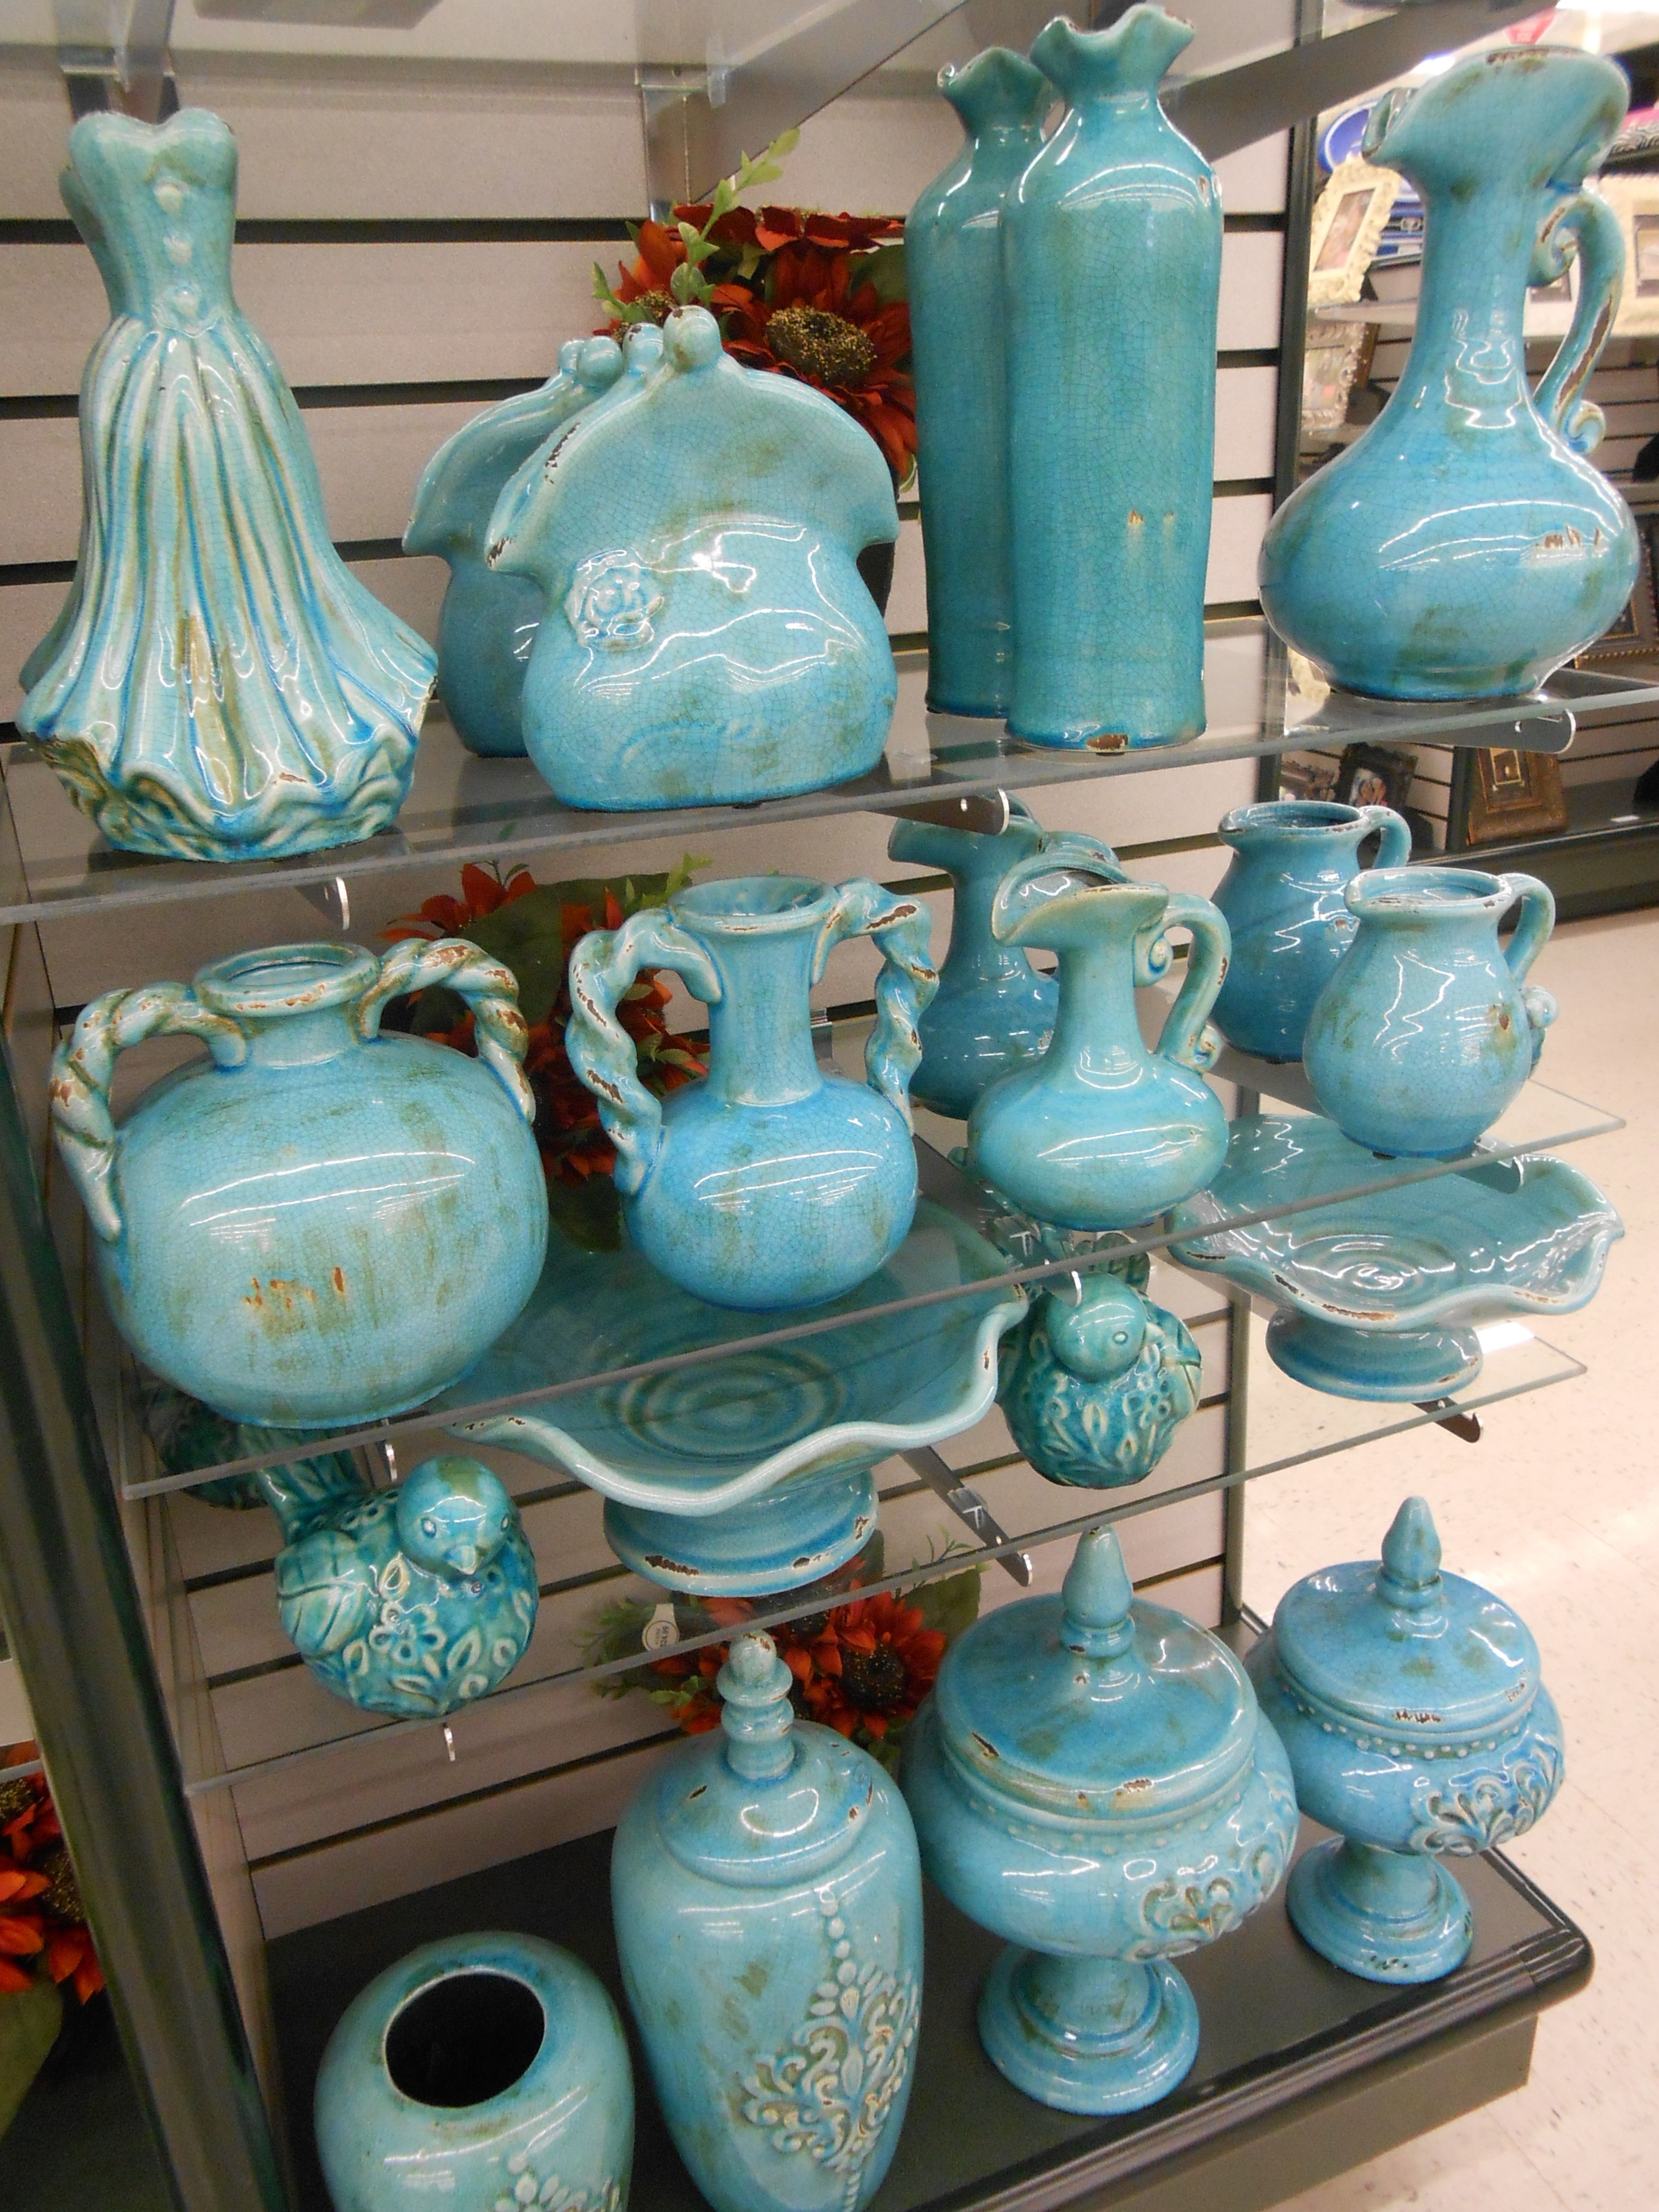 Turquois pottery at the hobby store.